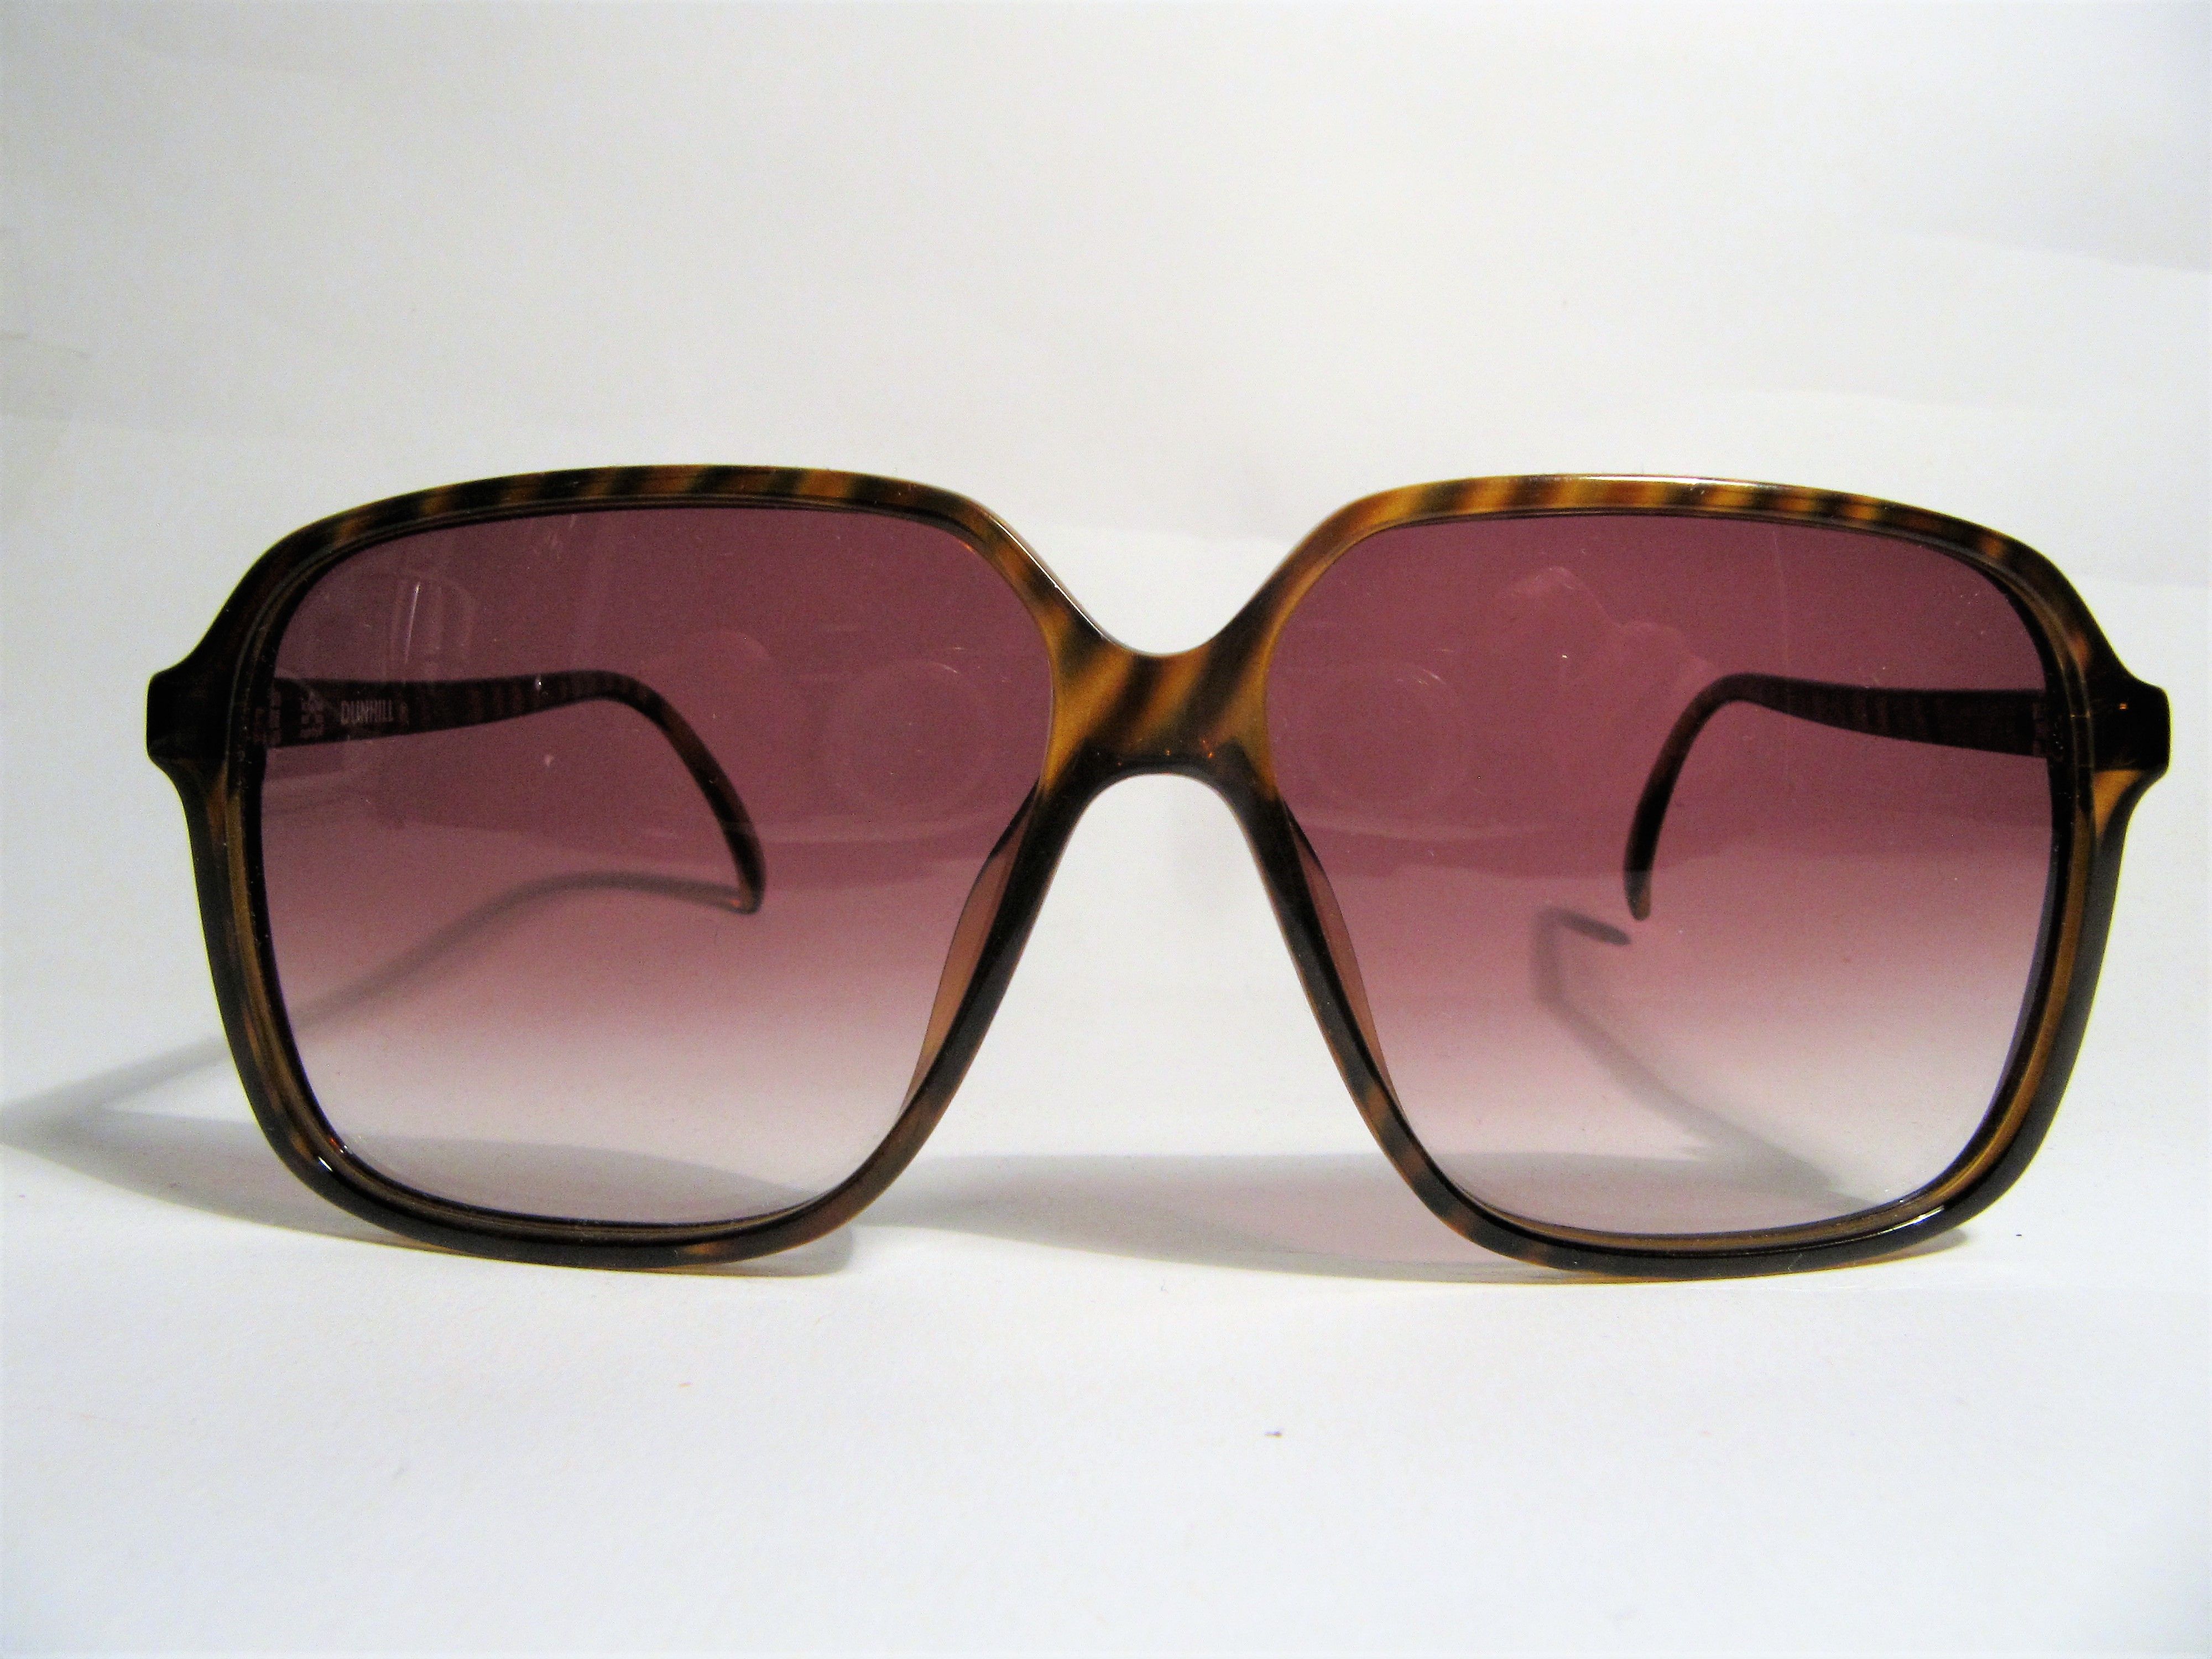 Dunhill London Optyl 6017A 1980s vintage sunglasses made in Austria